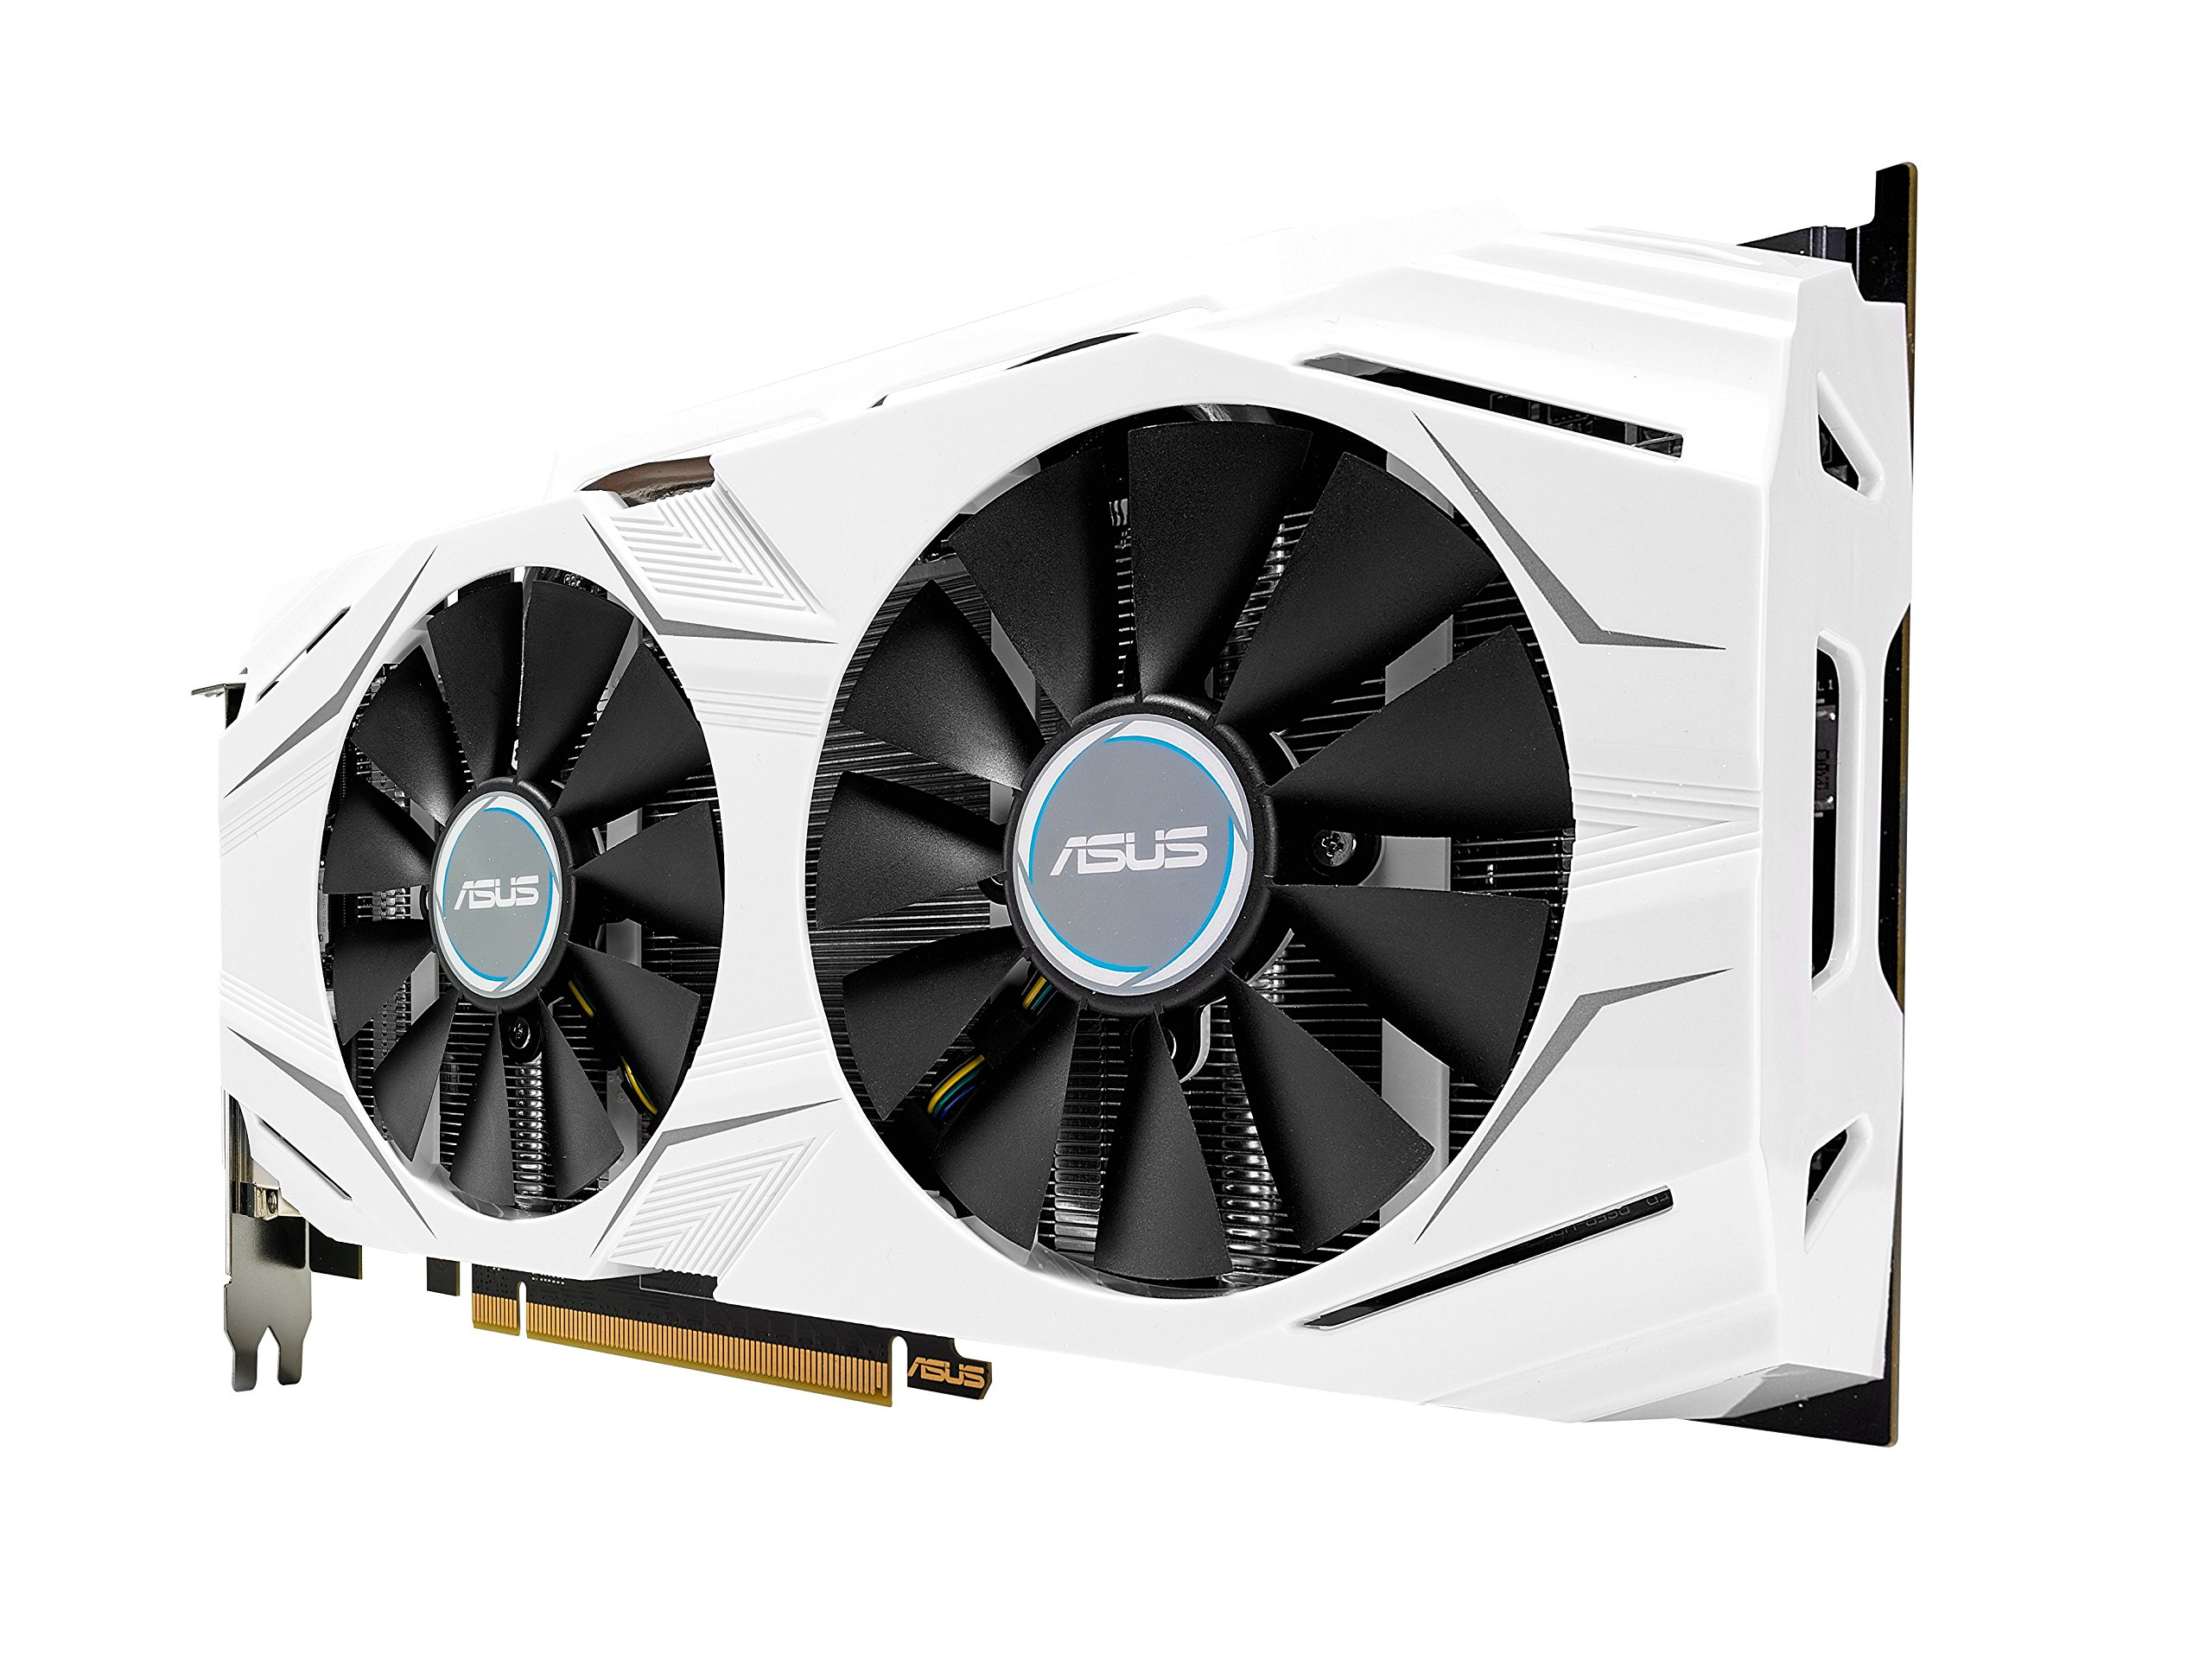 ASUS GeForce GTX 1060 3GB Dual-Fan OC Edition Graphics Card (DUAL-GTX1060-O3G) by Asus (Image #4)